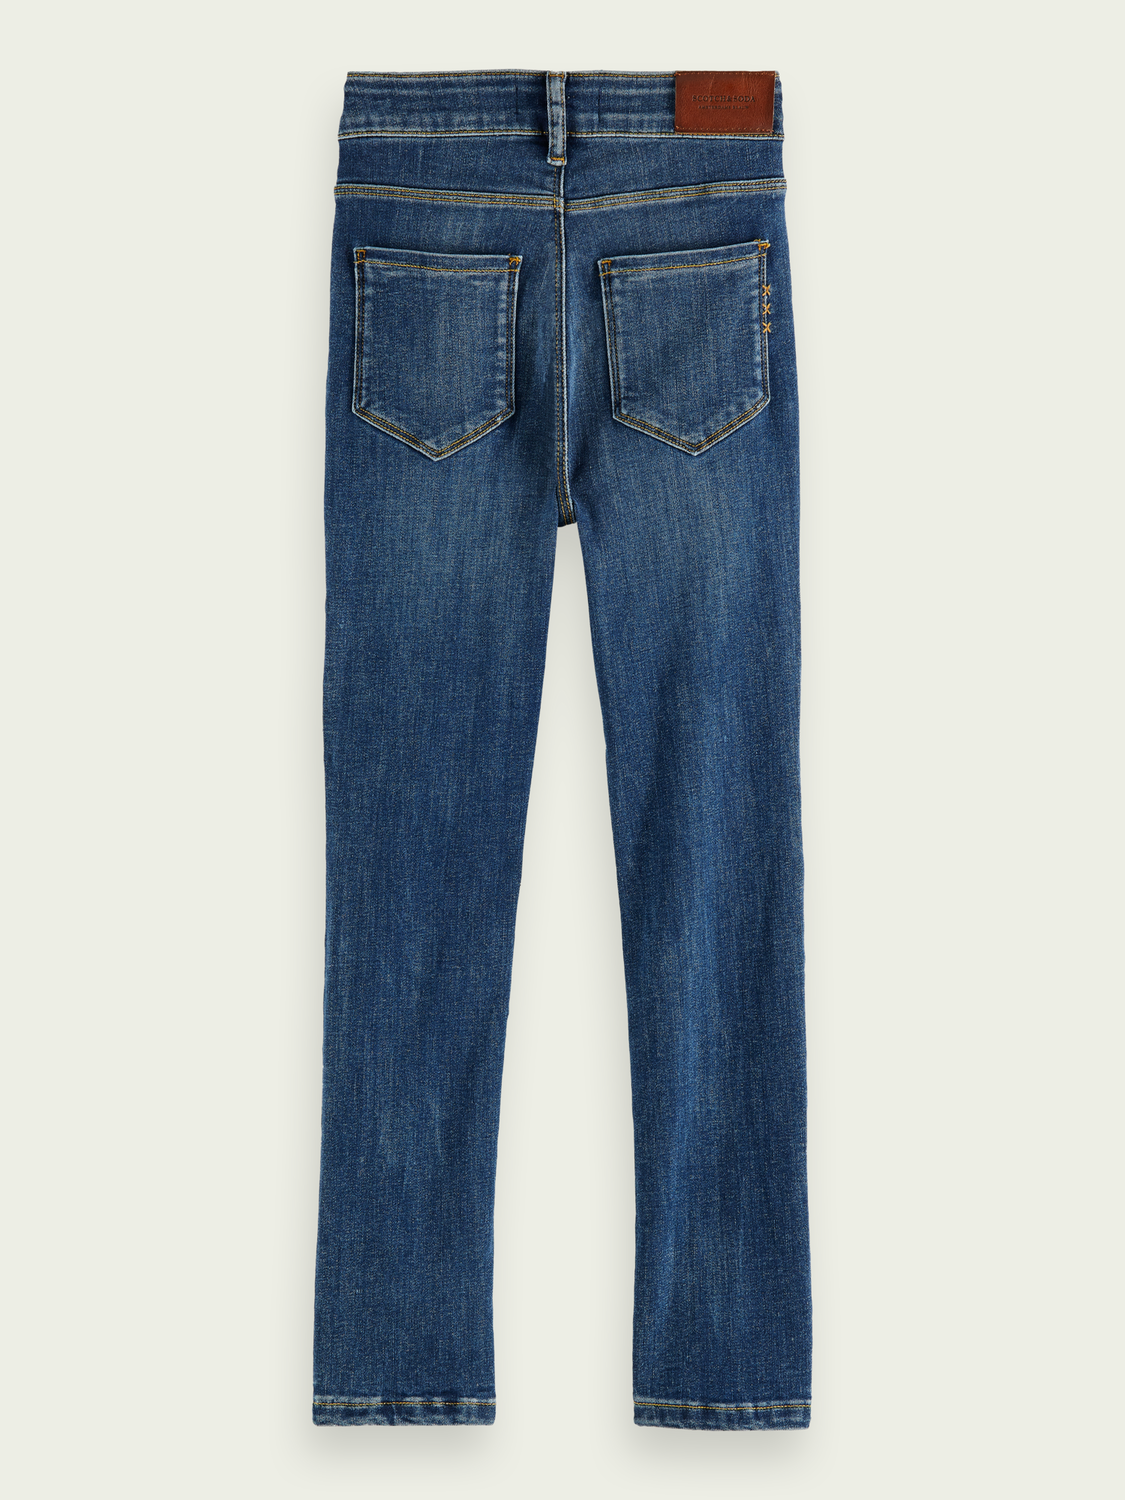 Kinder La Charmante High-Rise Skinny Fit Jeans– Get Ready